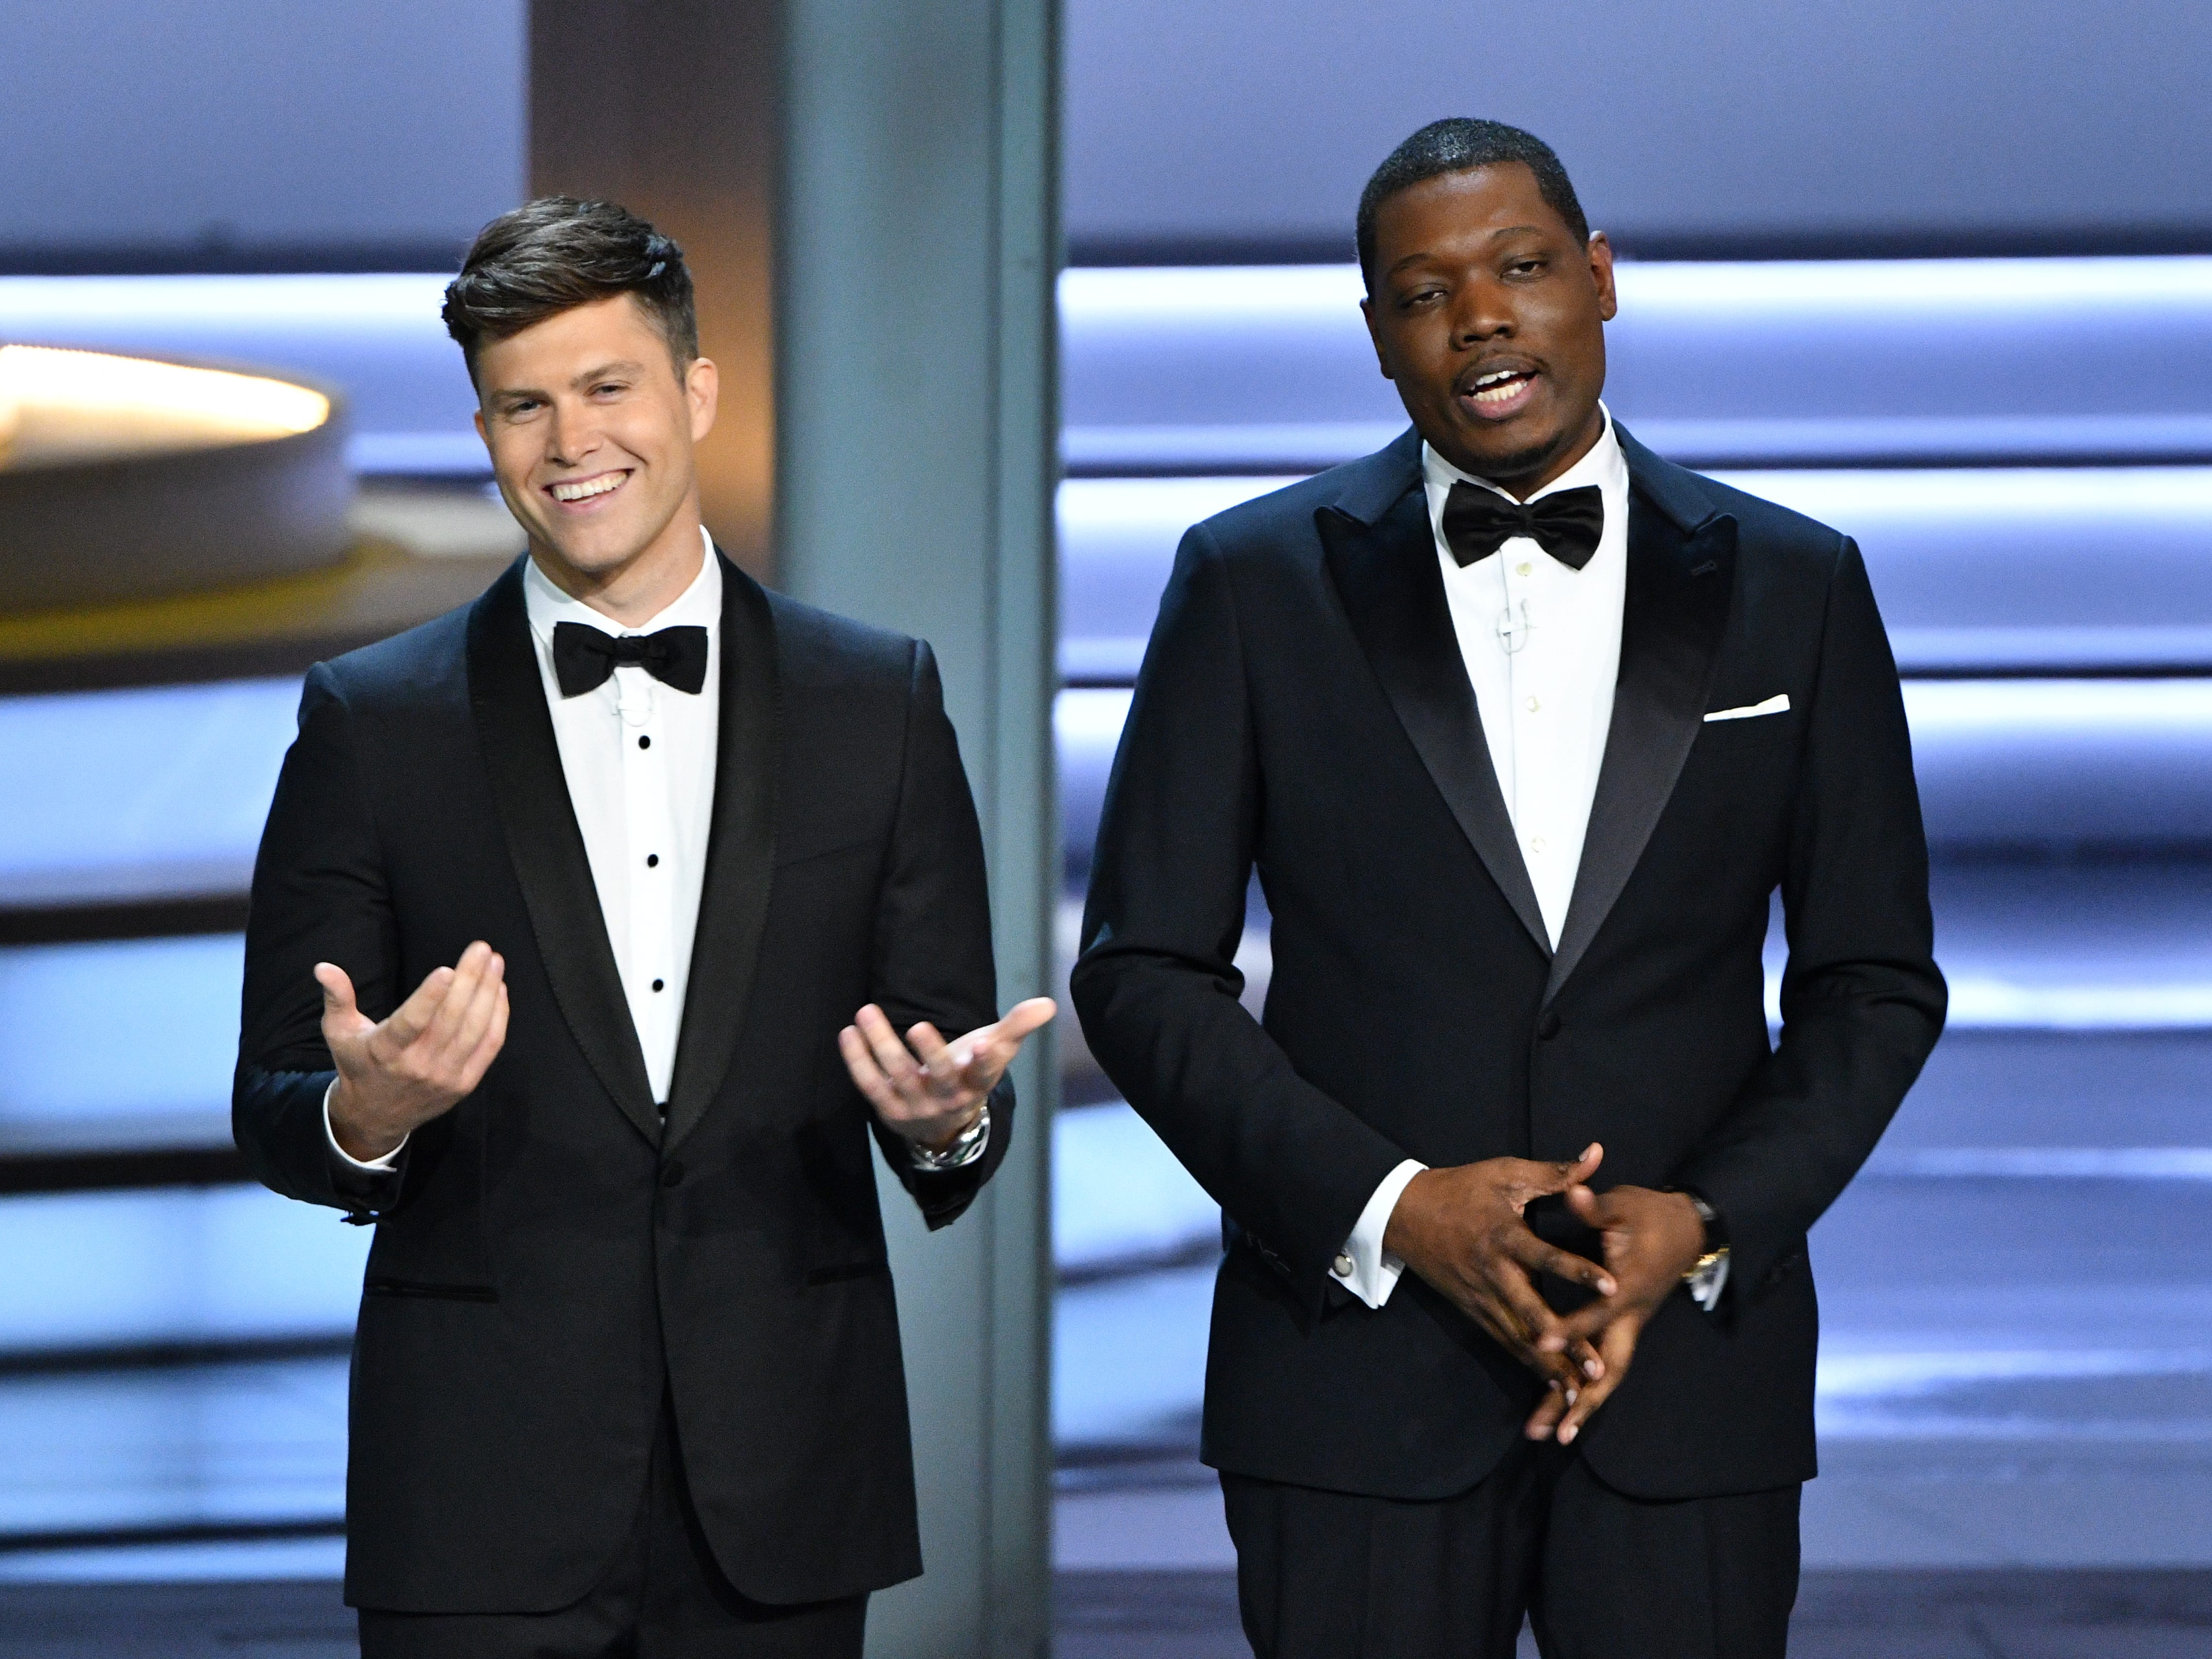 Emmys 2018: Ratings hit all-time low; is 'Saturday Night Live' to blame?